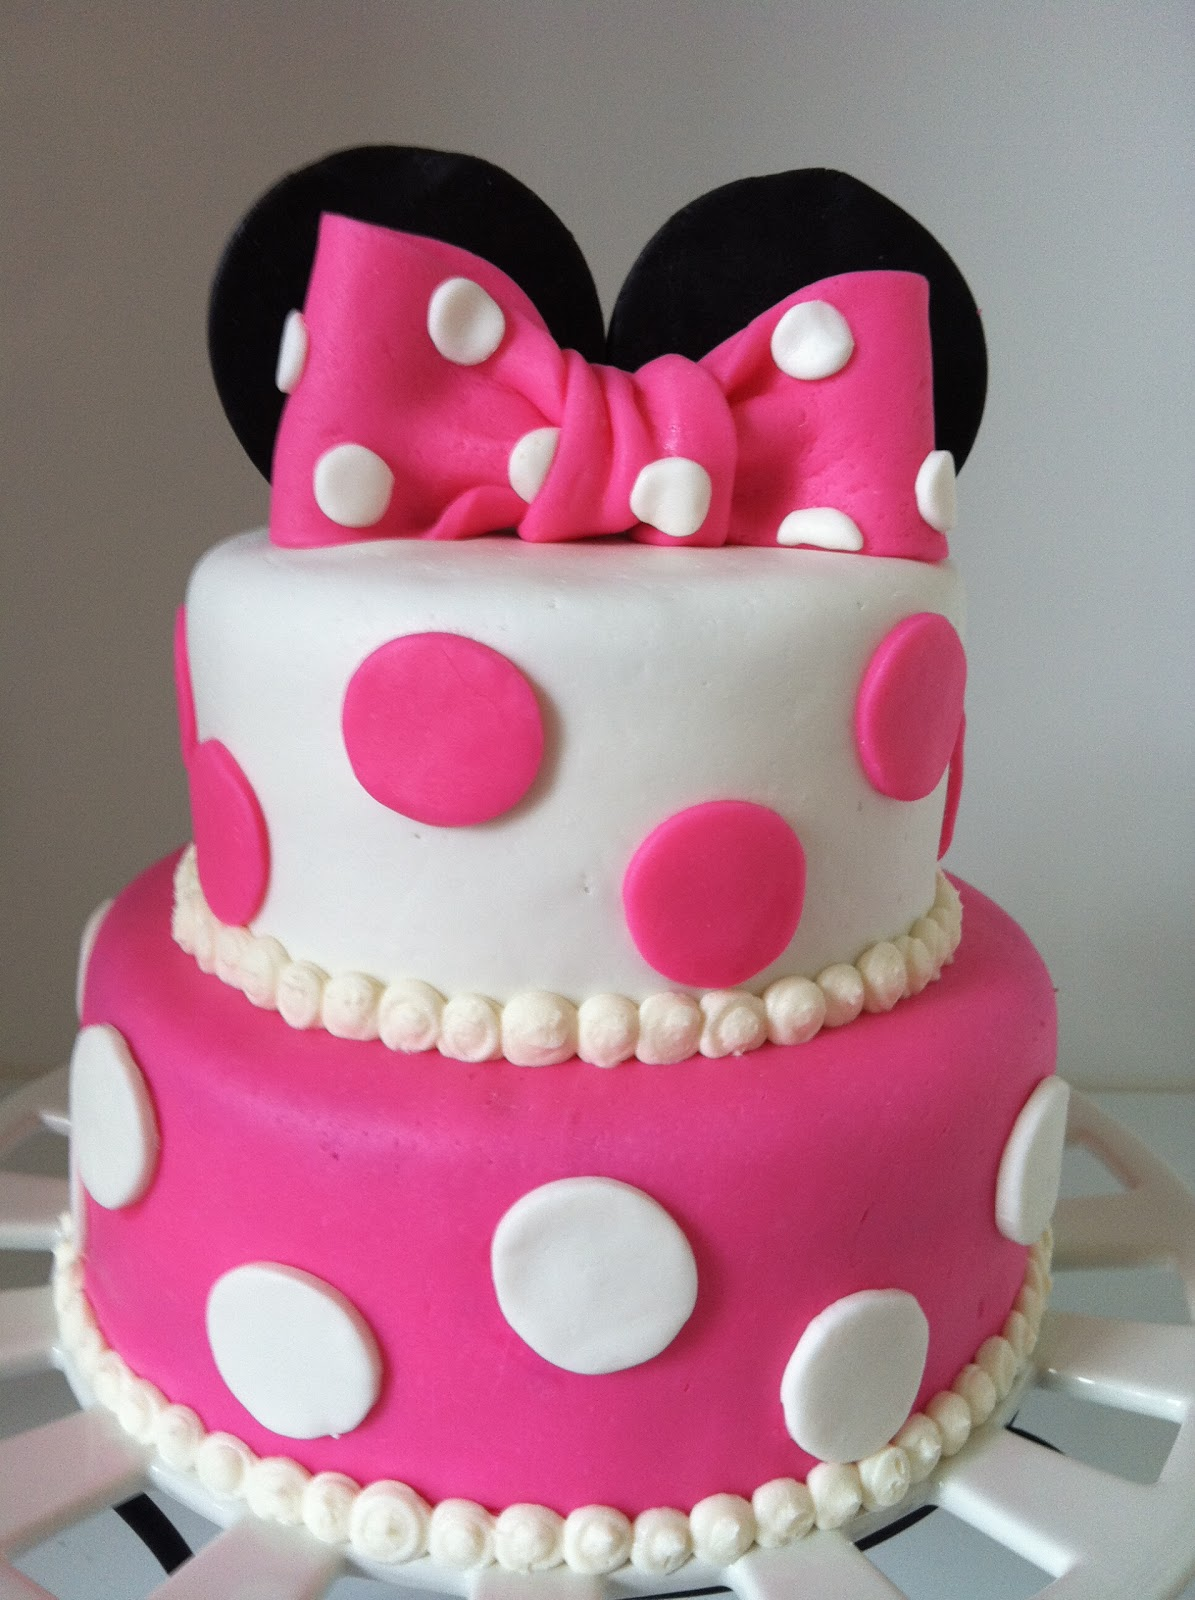 2nd Year Birthday Cake Designs For Baby Girl : The Weekly Sweet Experiment